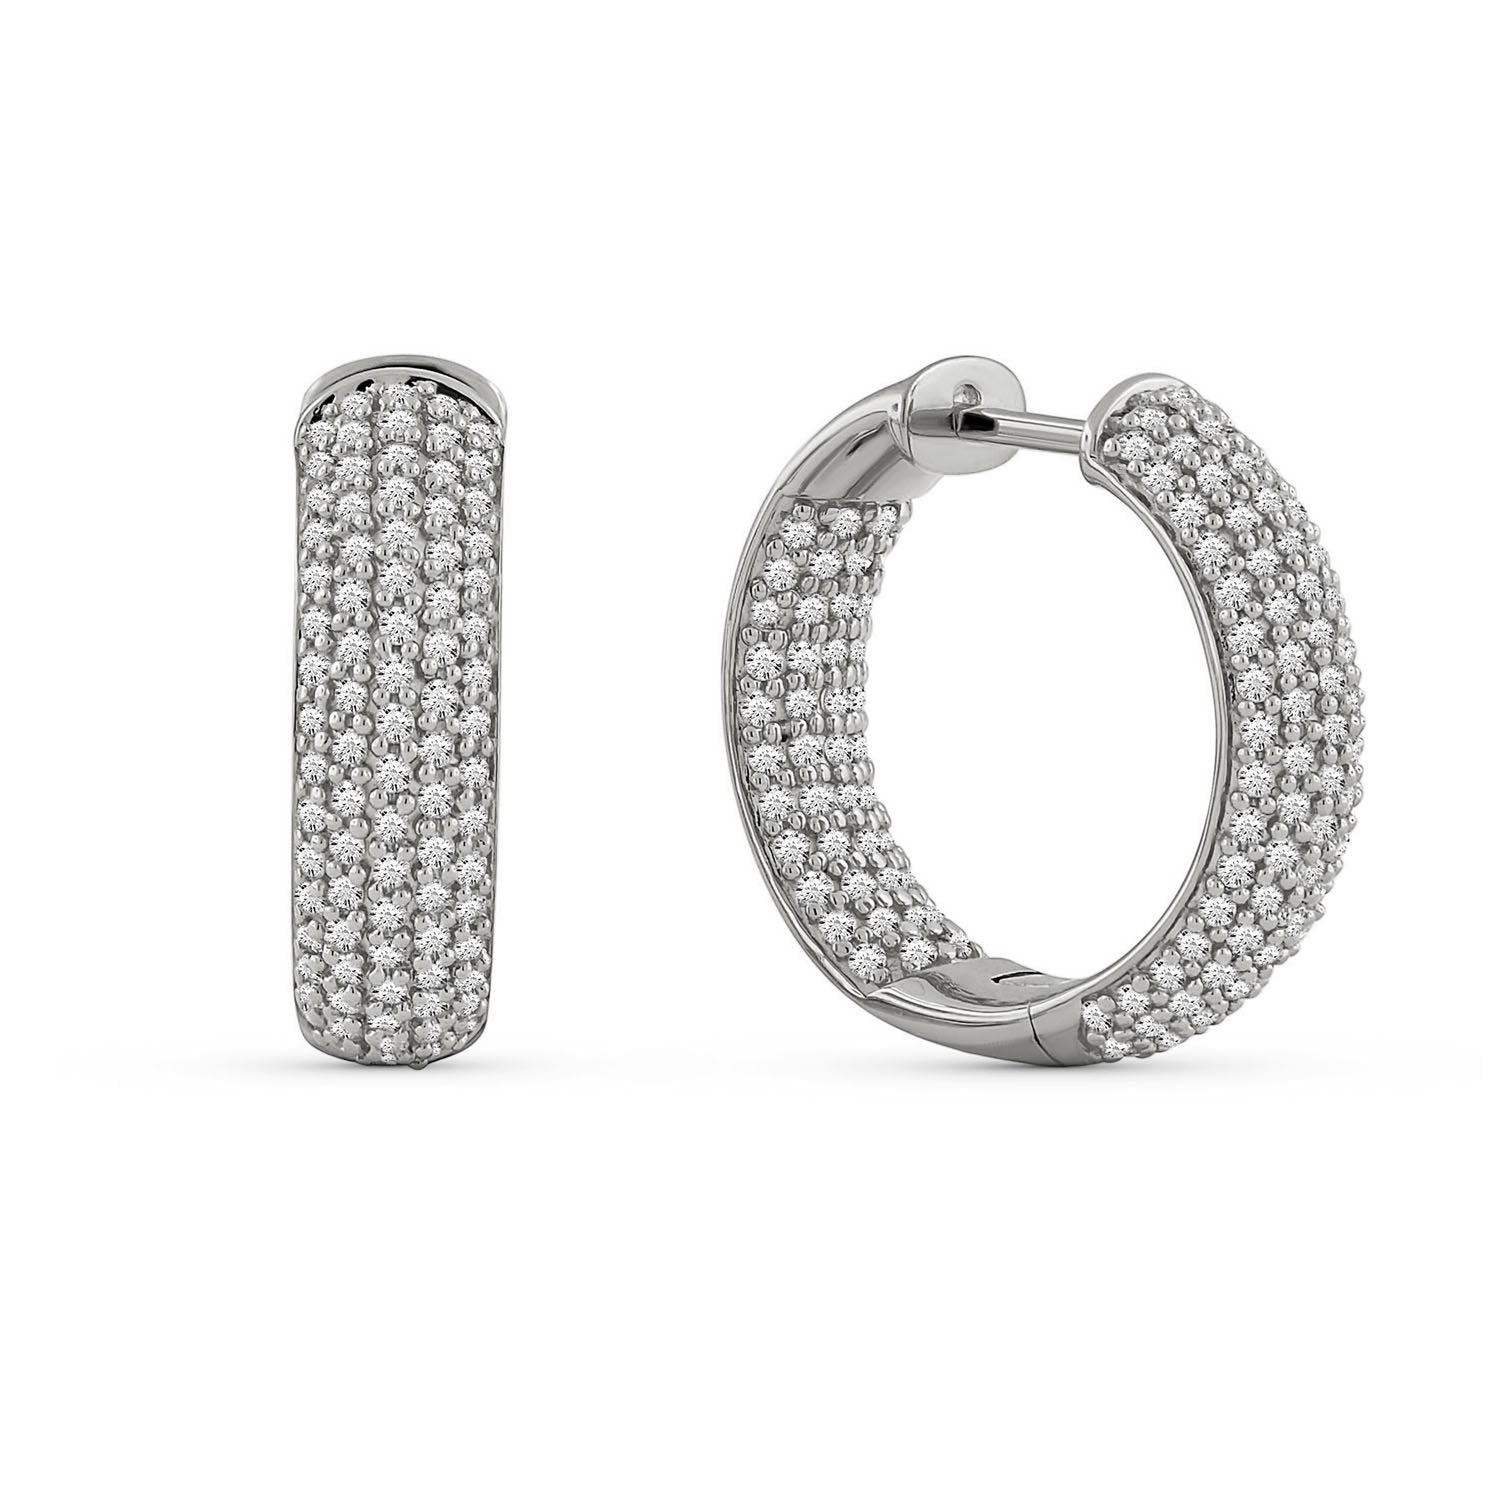 3.00 Carat Diamond Hoops Earrings in 10K White Gold